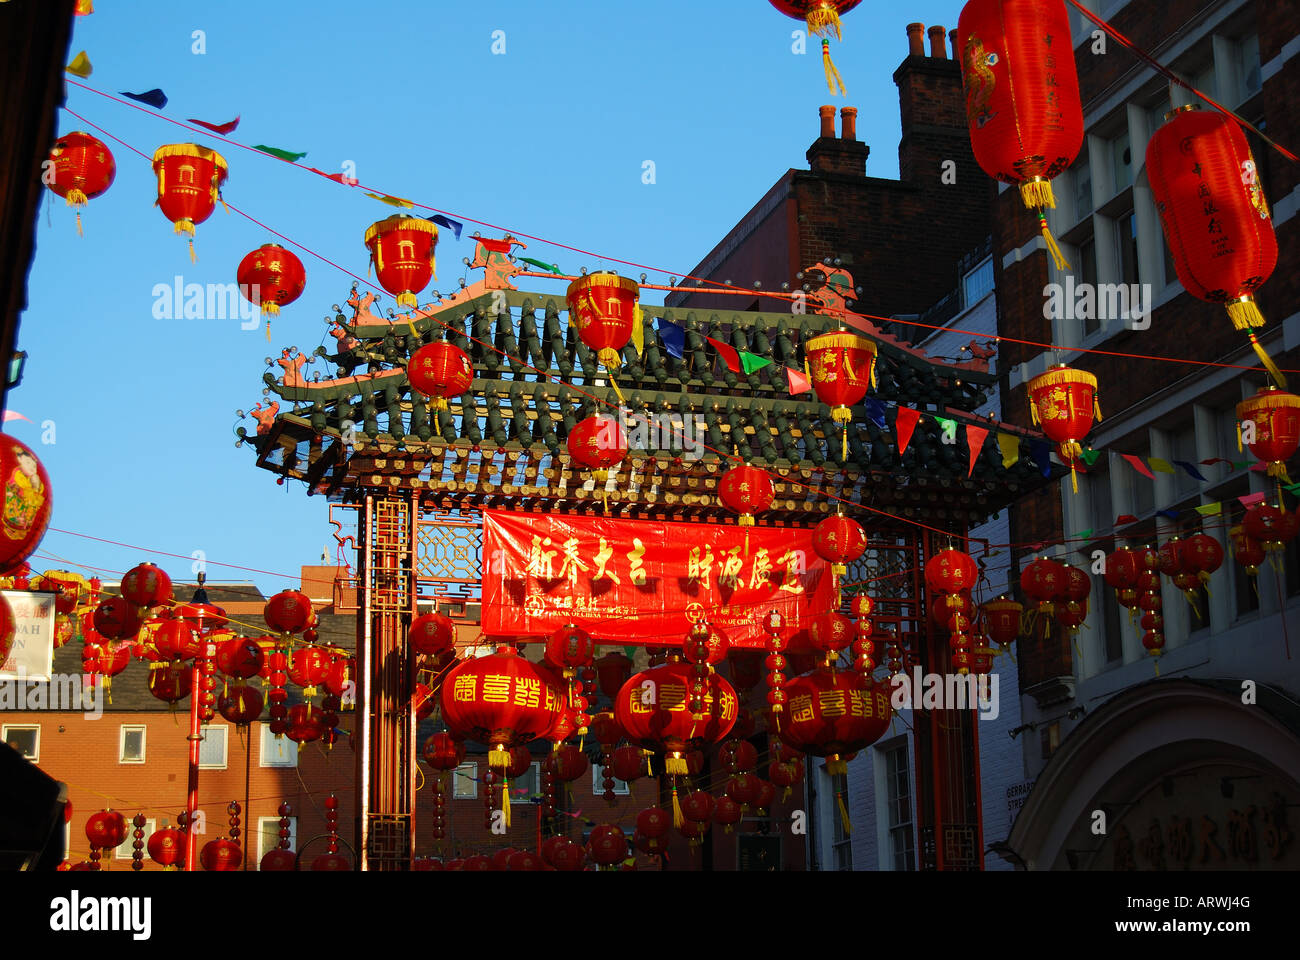 Chinese New Year decorations, Chinatown, Soho, West End ...